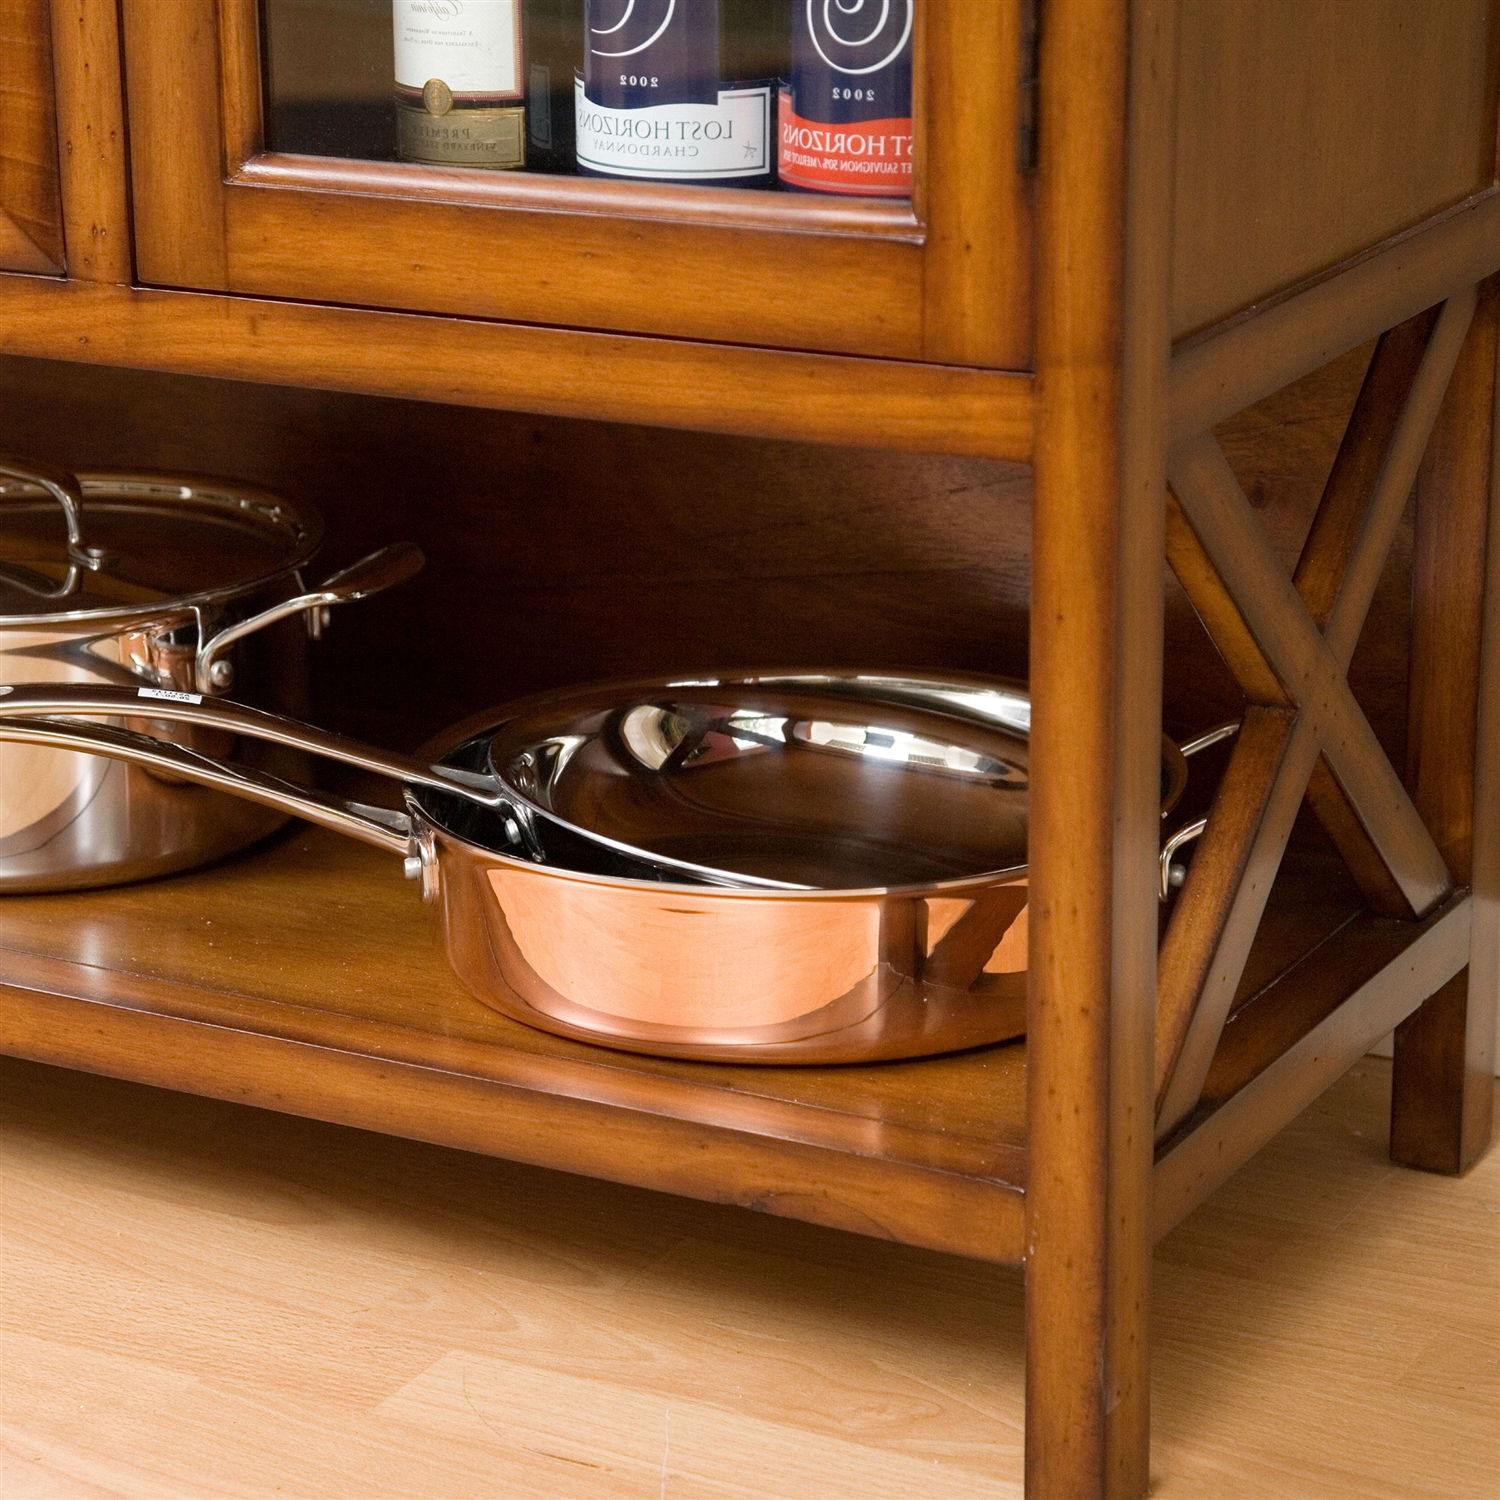 Wrought Iron Top 47- Bakers Rack In Heritage Oak Wood Finish